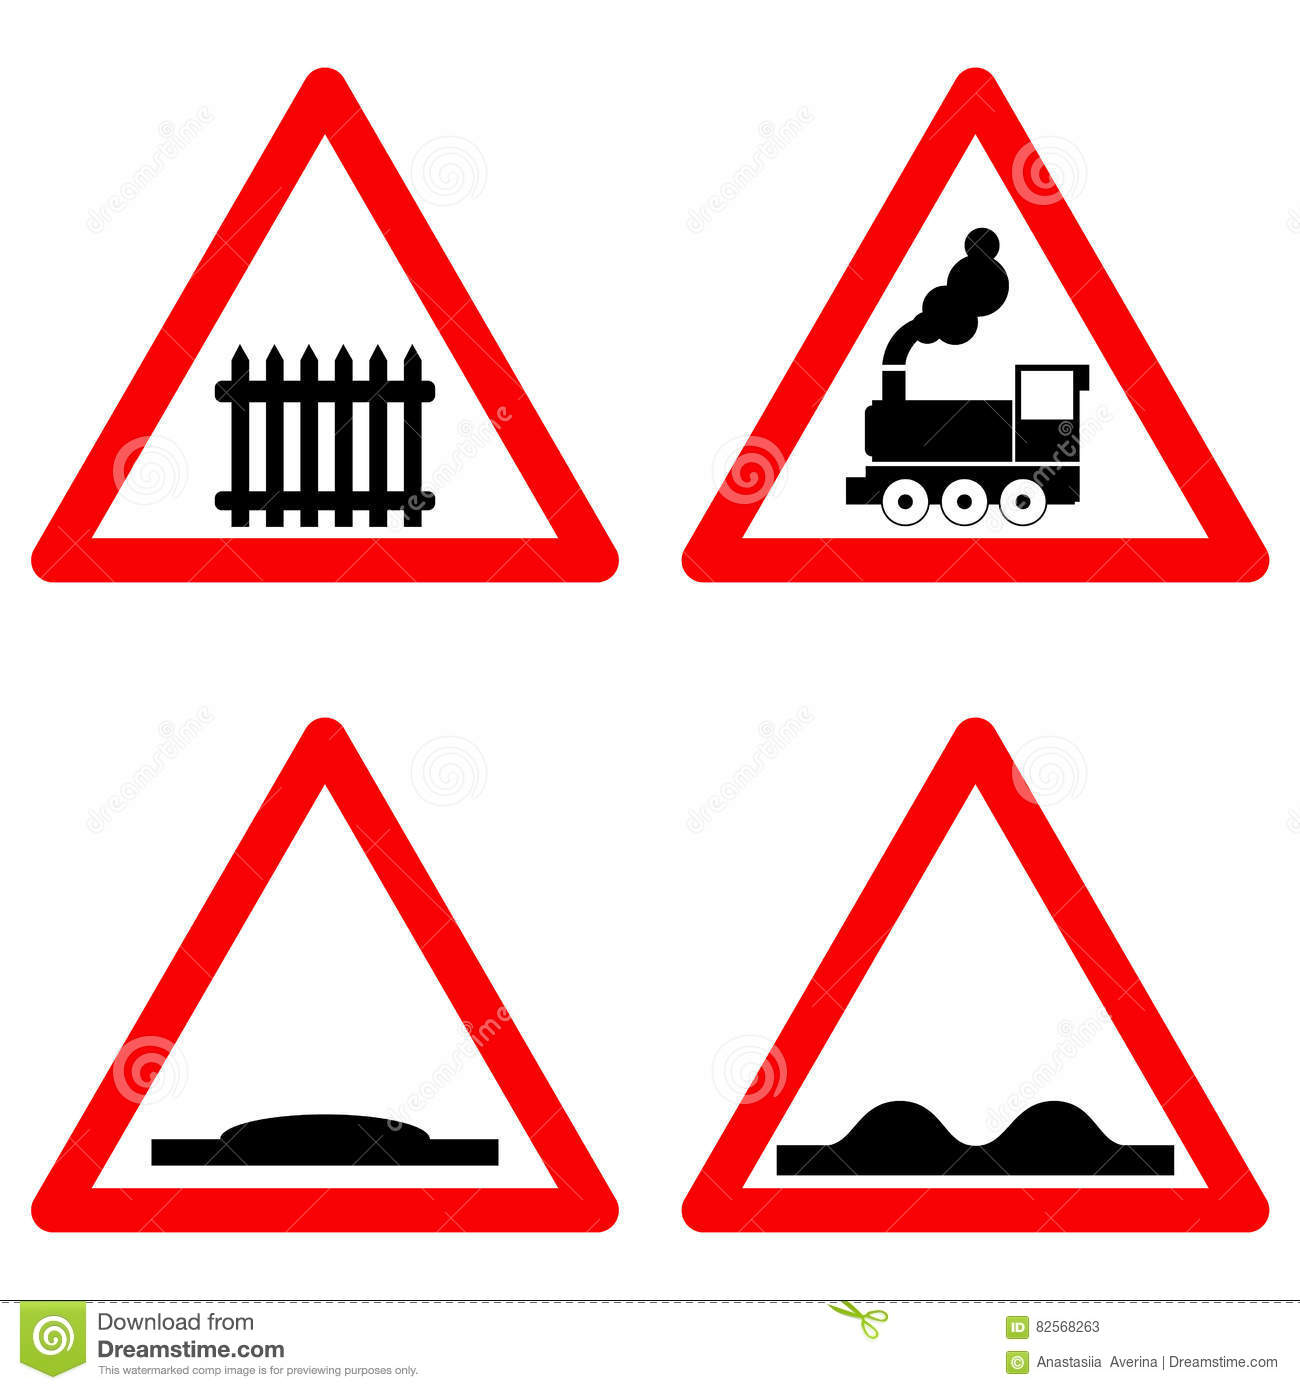 Triangle Road Signs >> Traffic Signs Vector Set On White Background Railway Level Crossing